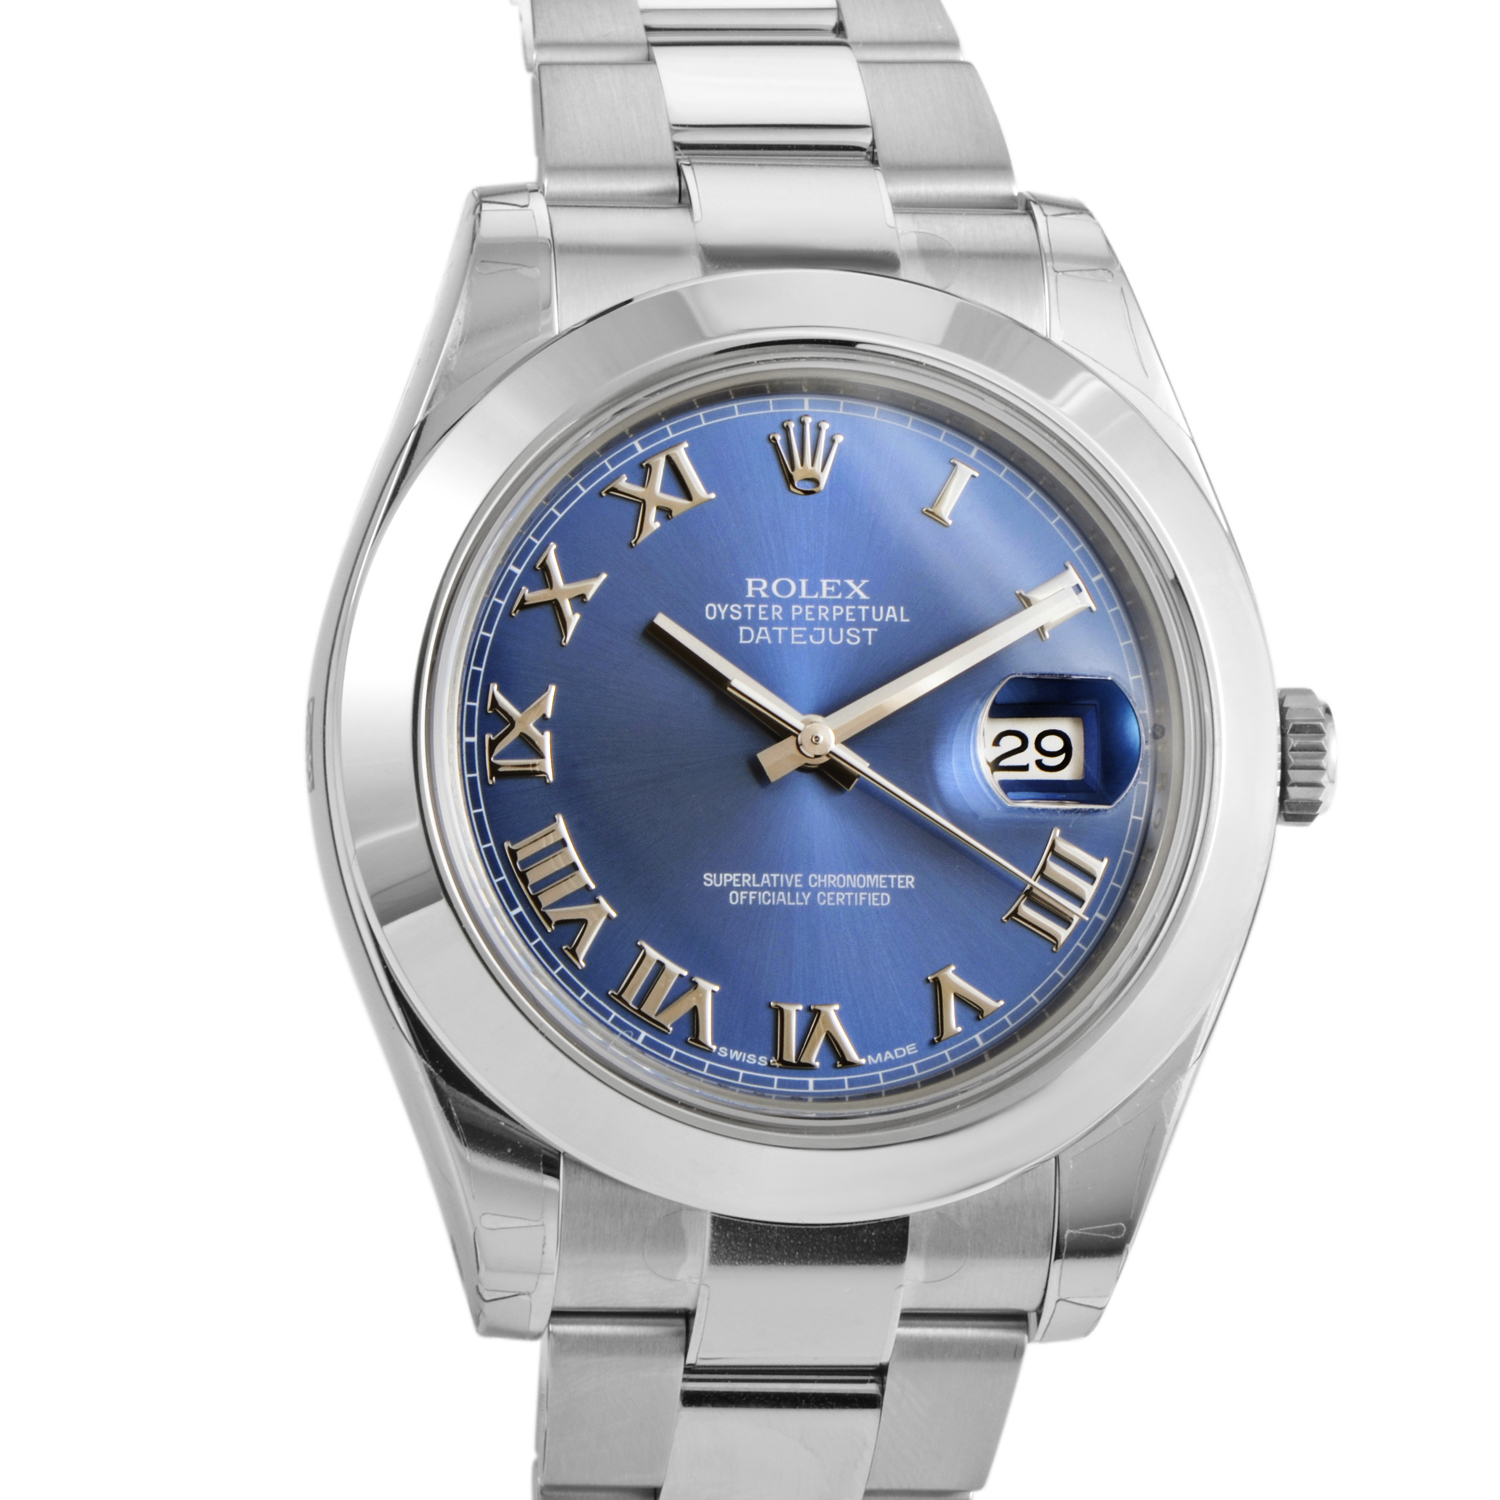 Oyster Perpetual Datejust II 116300 blro